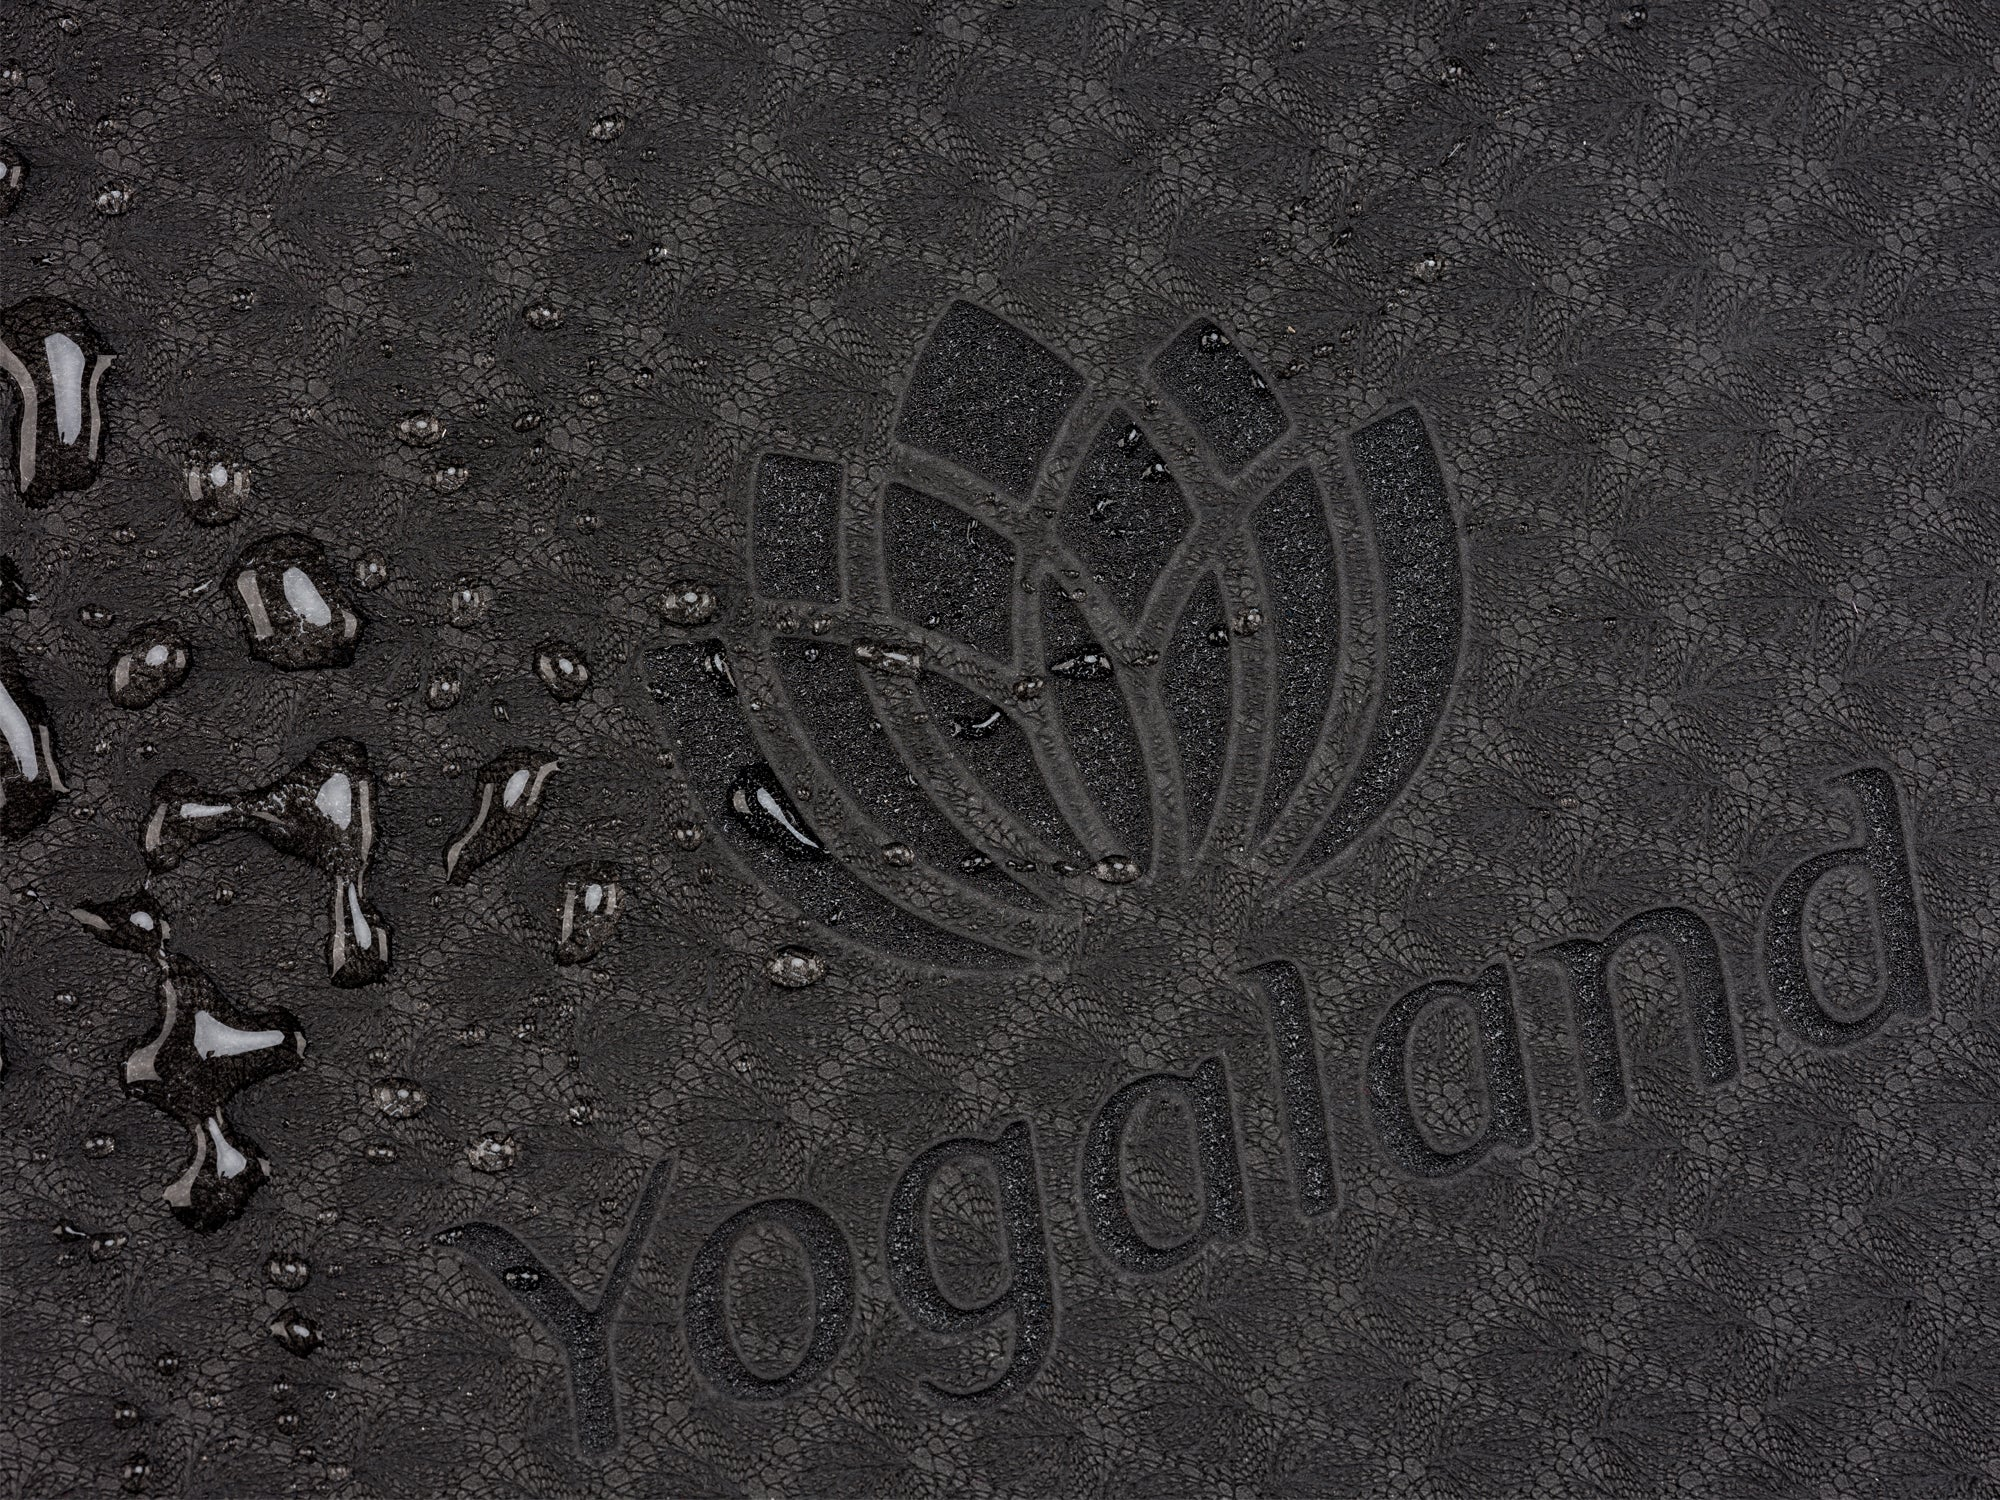 YOGALAND Premium Yoga Mat with Carrier Strap - Yoga Mat 6mm 1/4-Inch Thick, Non-Slip, Eco-Friendly Lightweight, Extra Large 72 x 24 for Yoga, Pilates, Exercise, Fitness (Dark Grey)